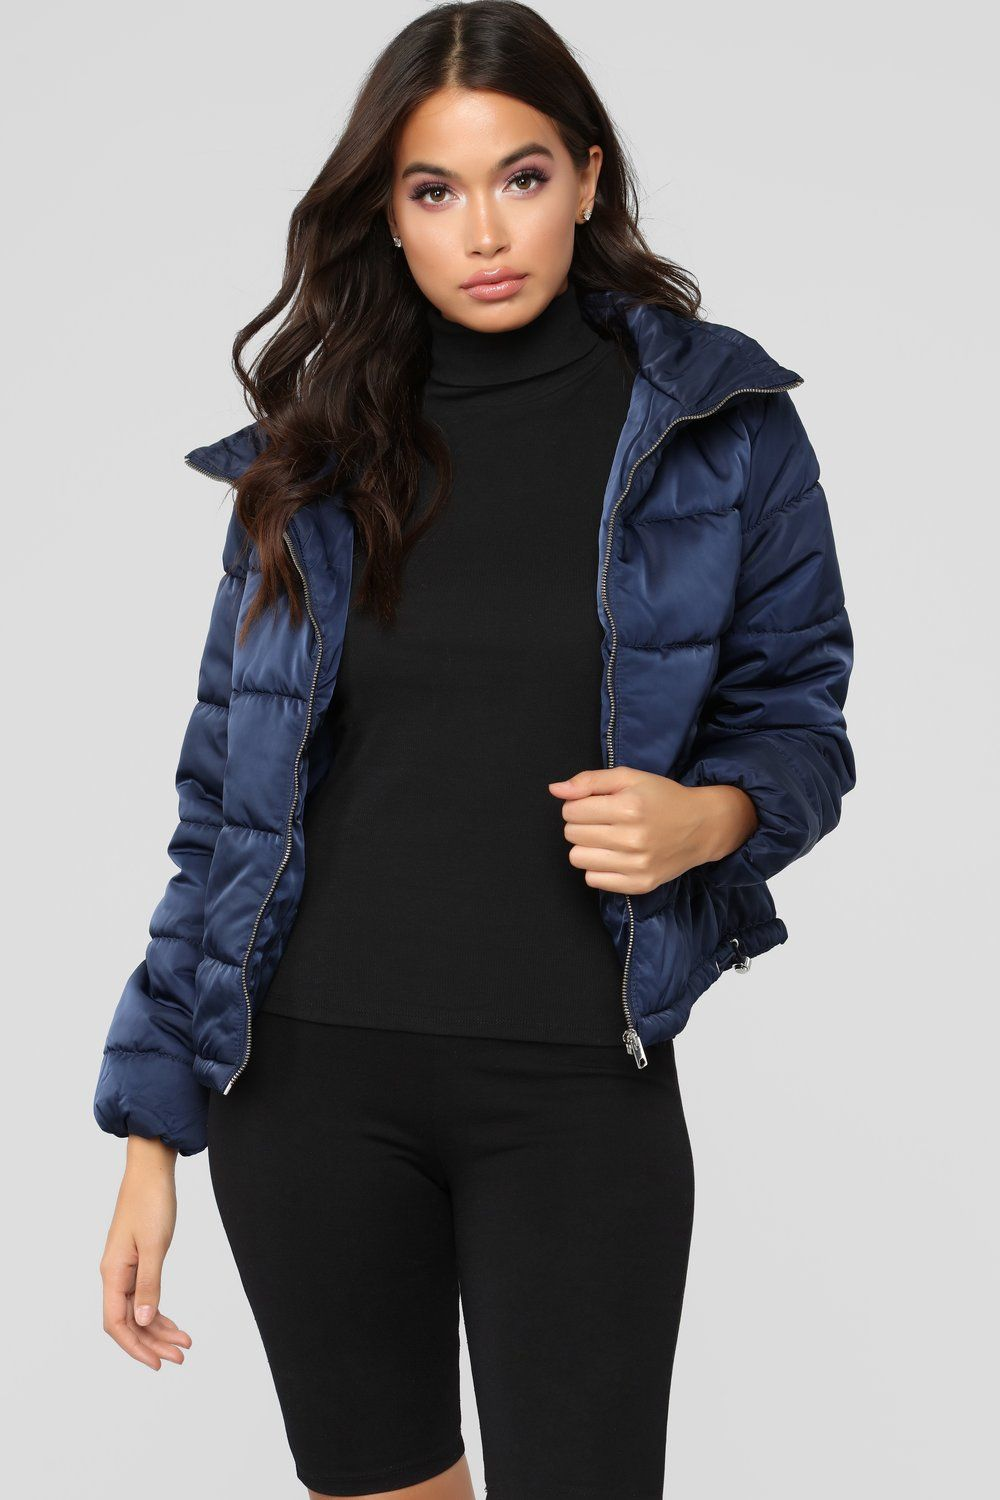 On The Cold Side Puffer Jacket Navy Puffer Jacket Outfit Jacket Outfit Women Puffer Jacket Fur Hood [ 1500 x 1000 Pixel ]